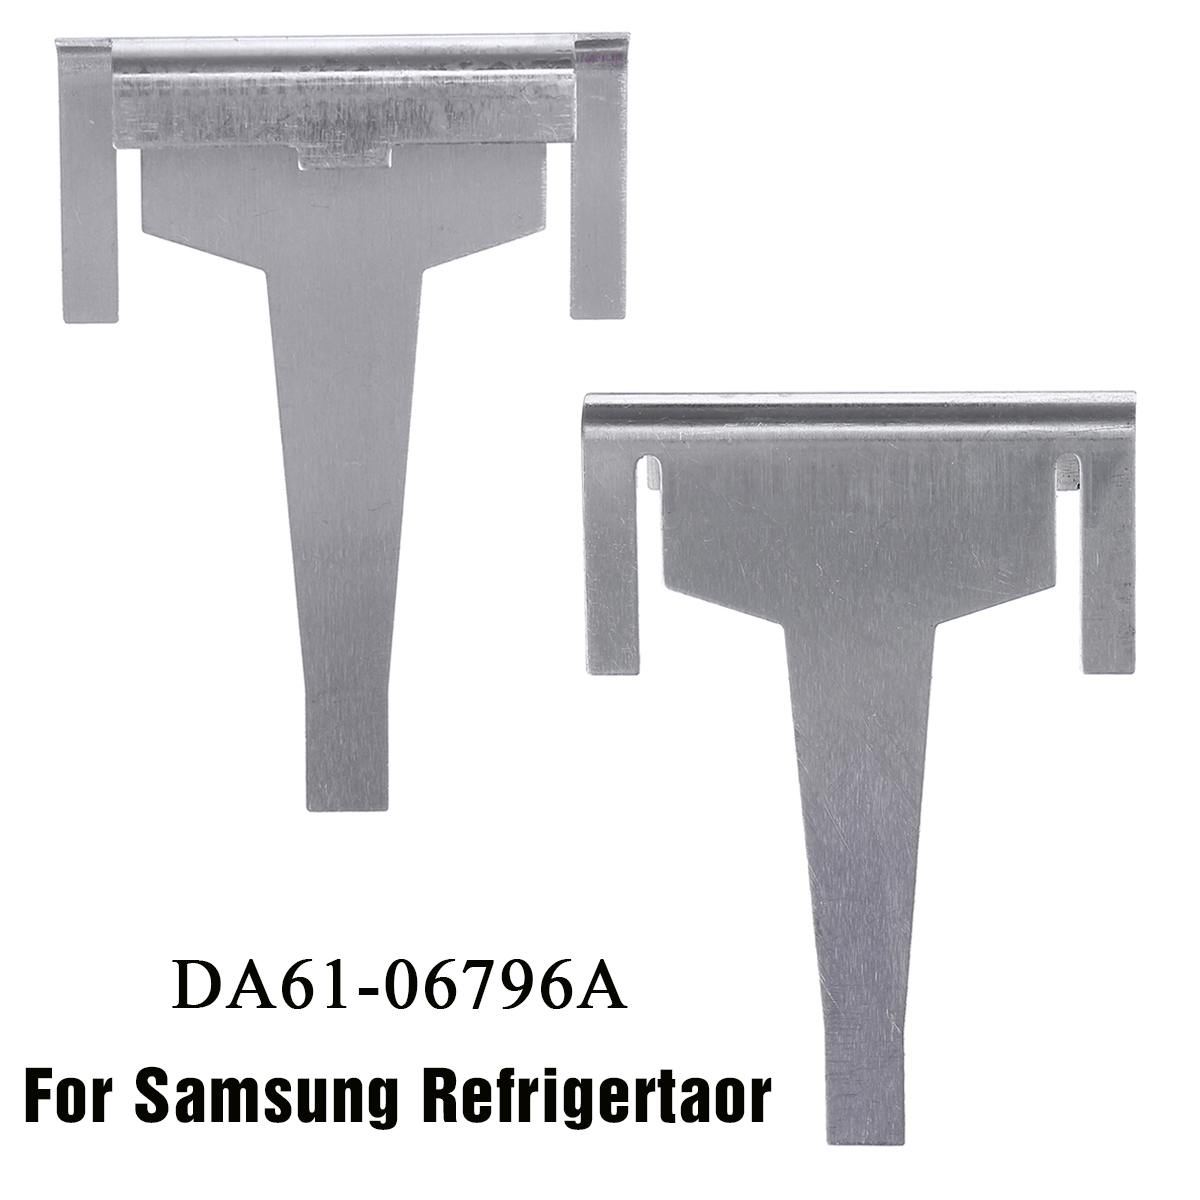 1PCS Metal Refrigerator Evaporator Drain Clip For Samsung Fridge Freezer DA61-06796A 1870872 1718552